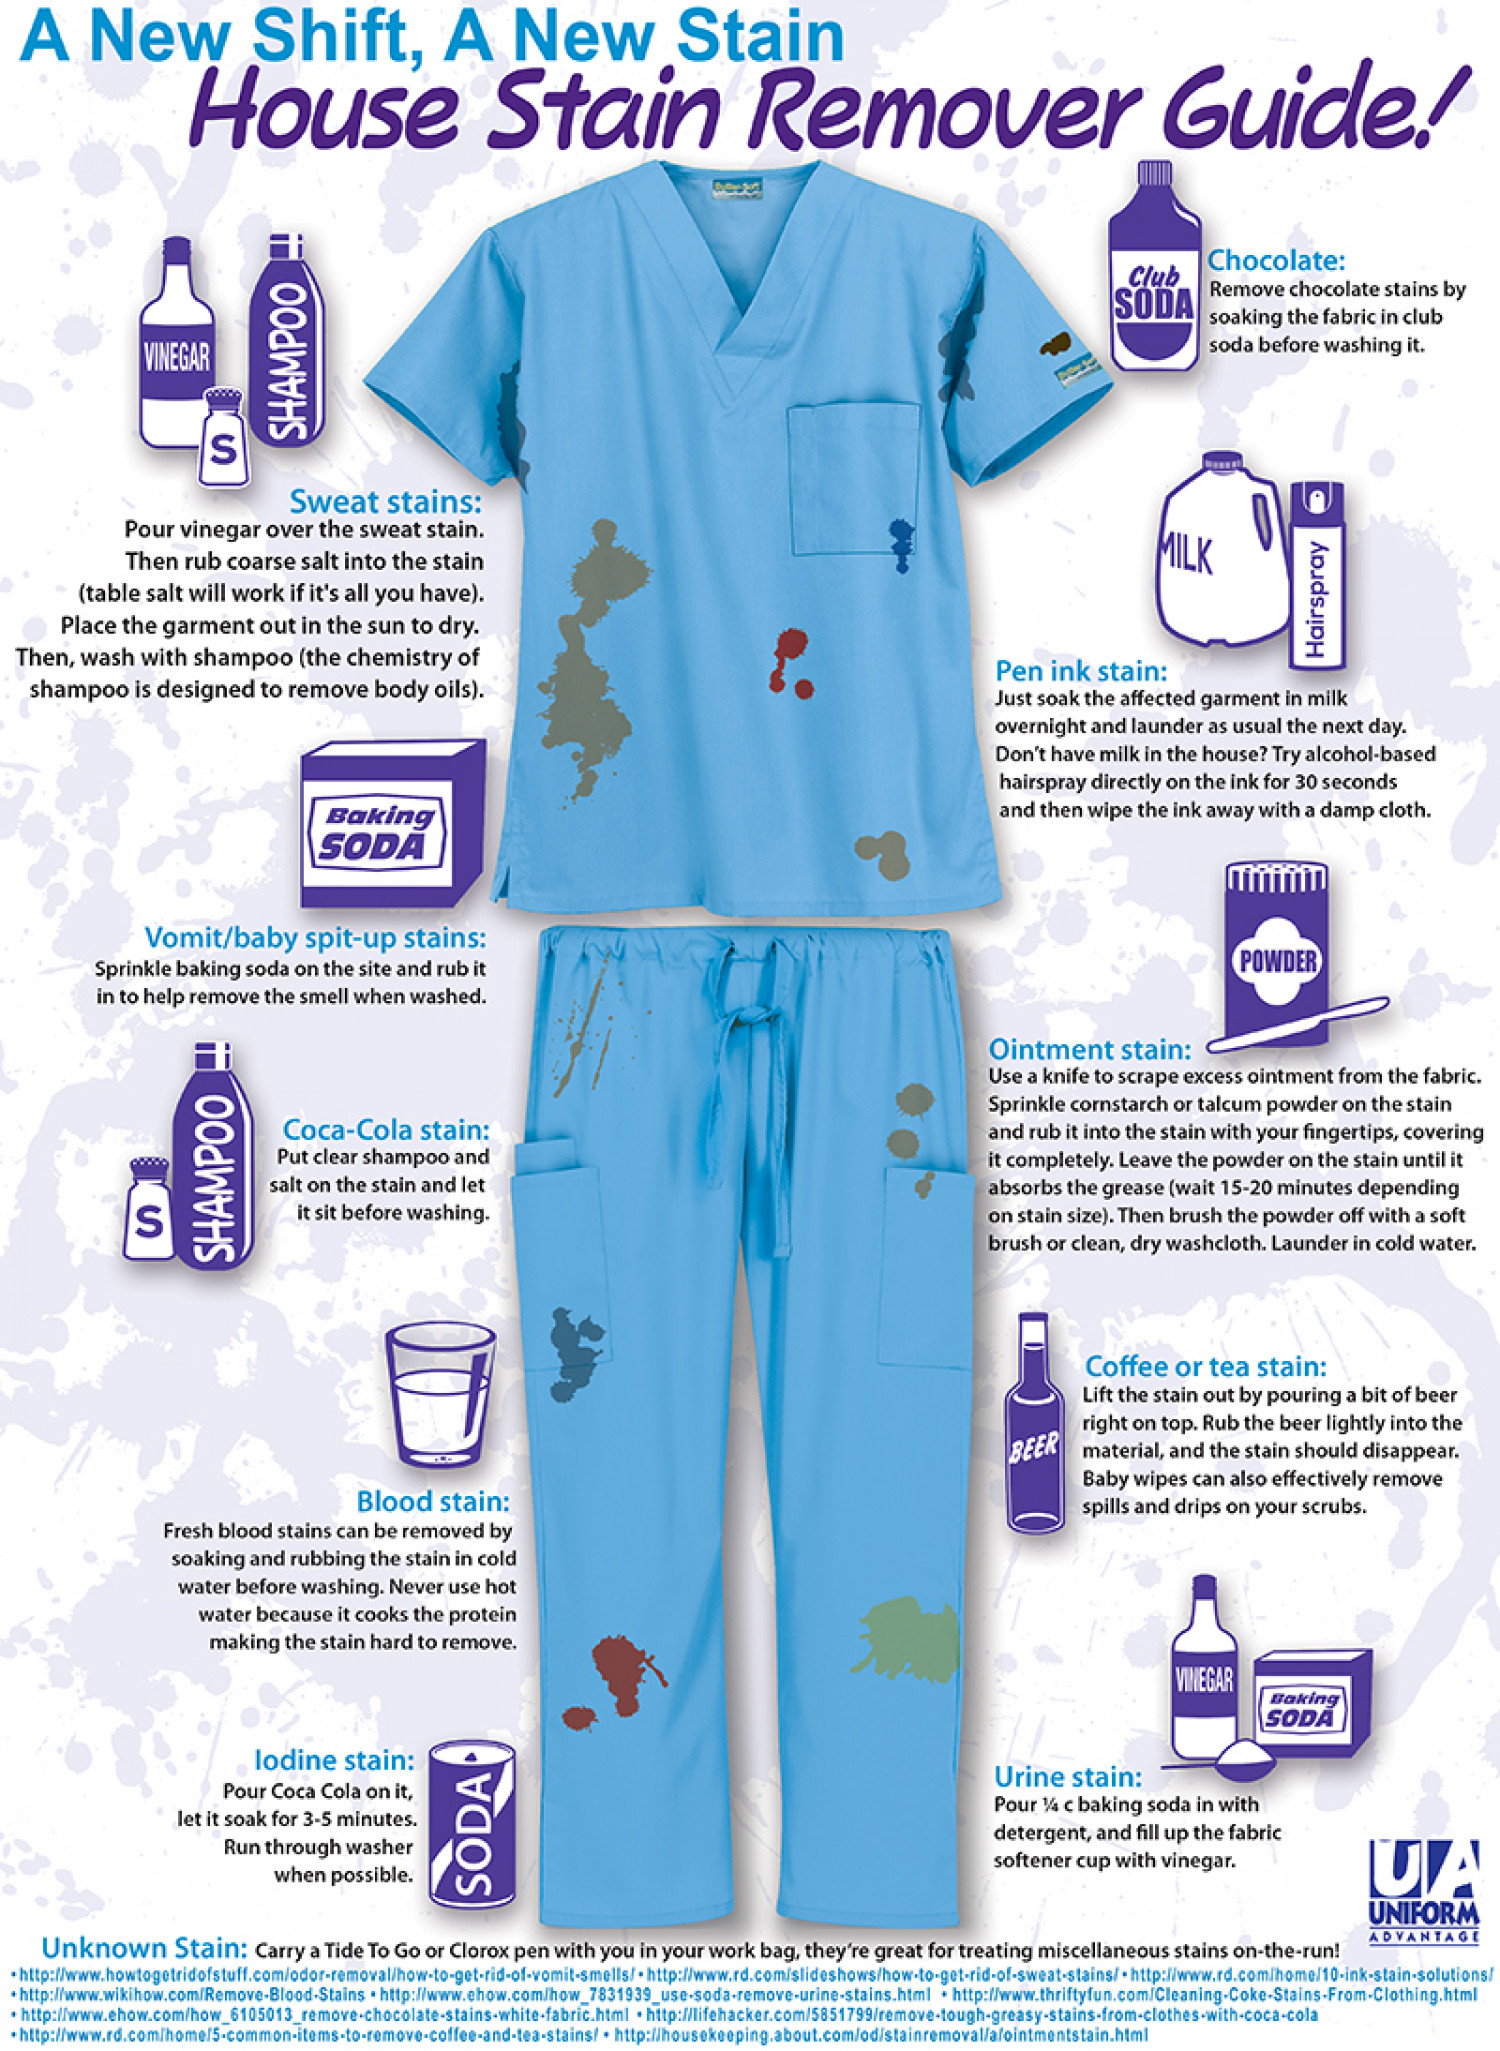 Medical Scrubs Stain Remover Guide by Uniform Advantage Infographic